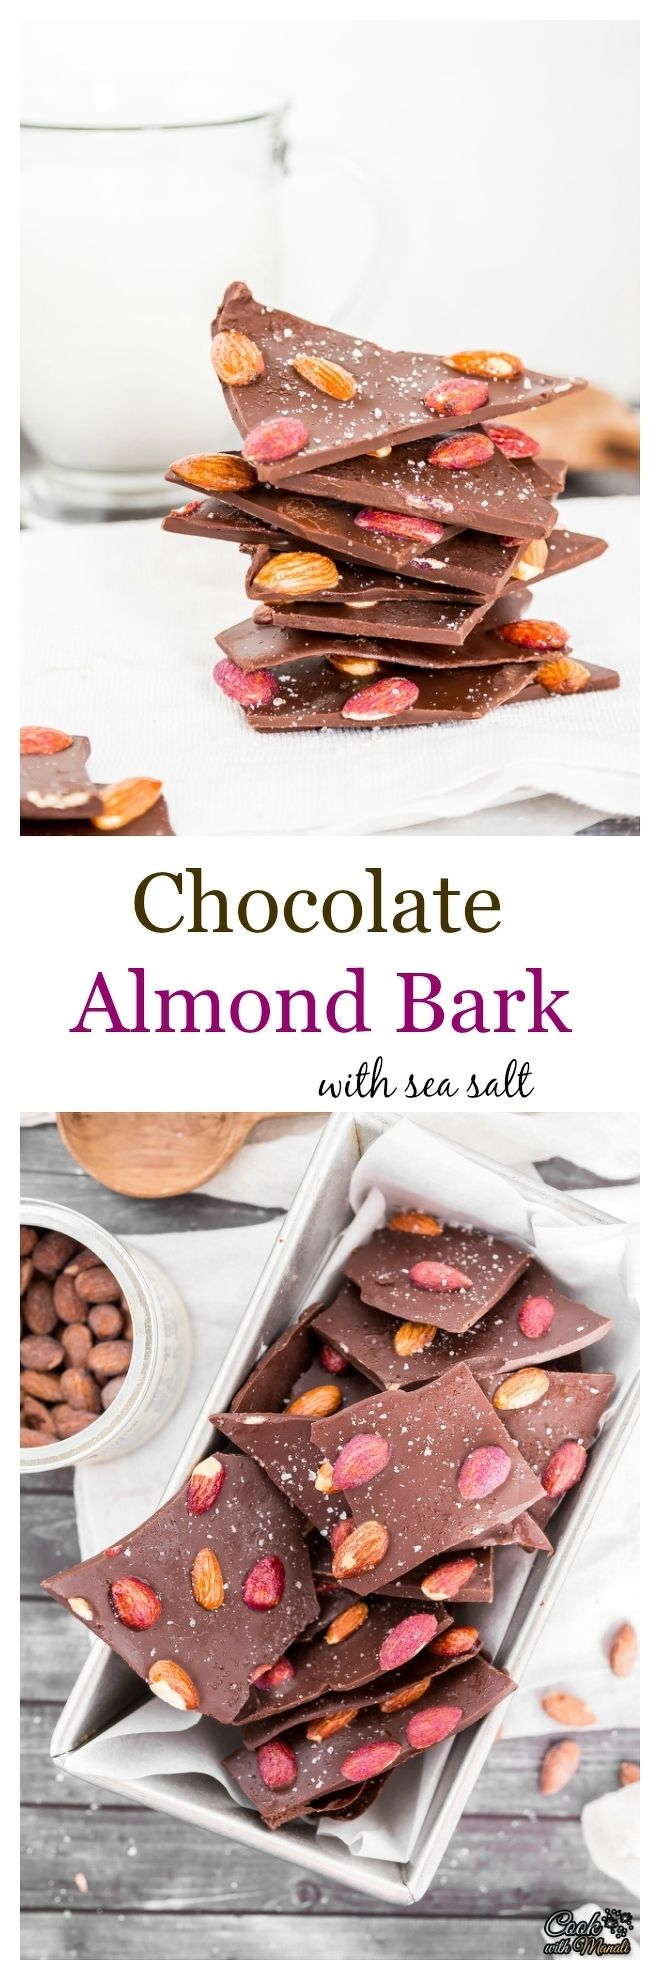 Chocolate Almond Bark with Sea Salt Collage-nocwm